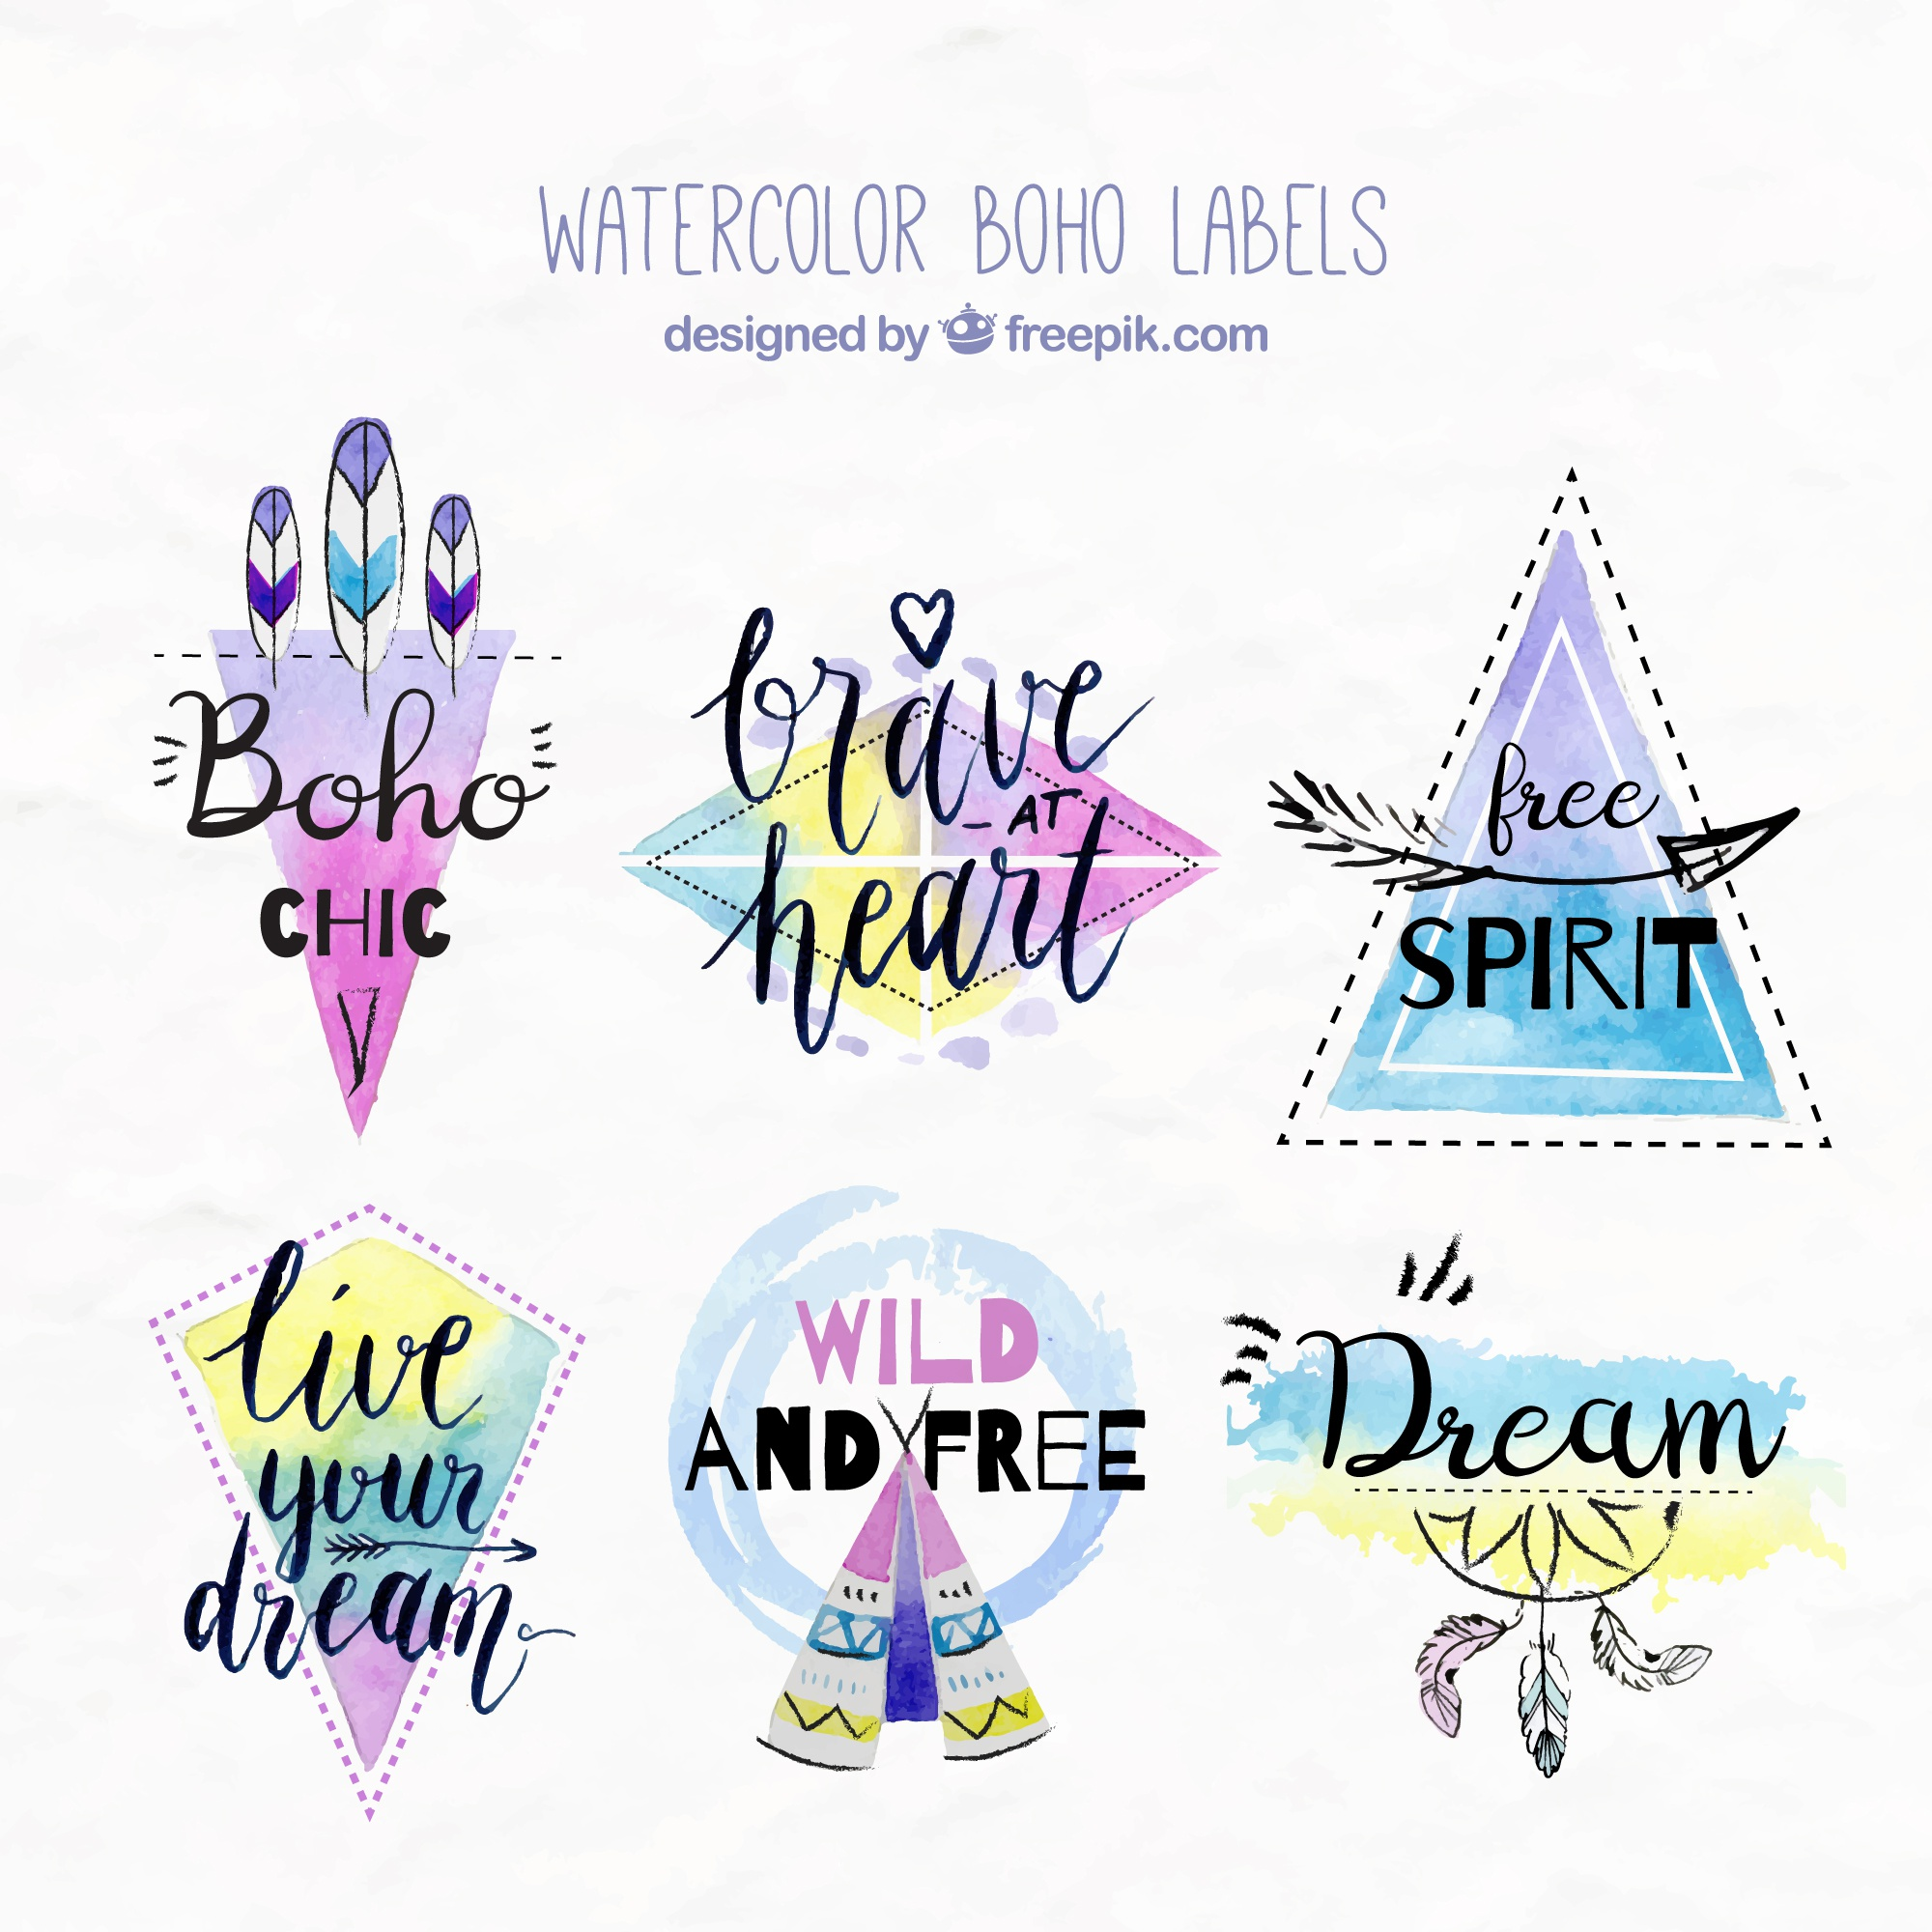 Watercolor boho stickers with inspiring messages